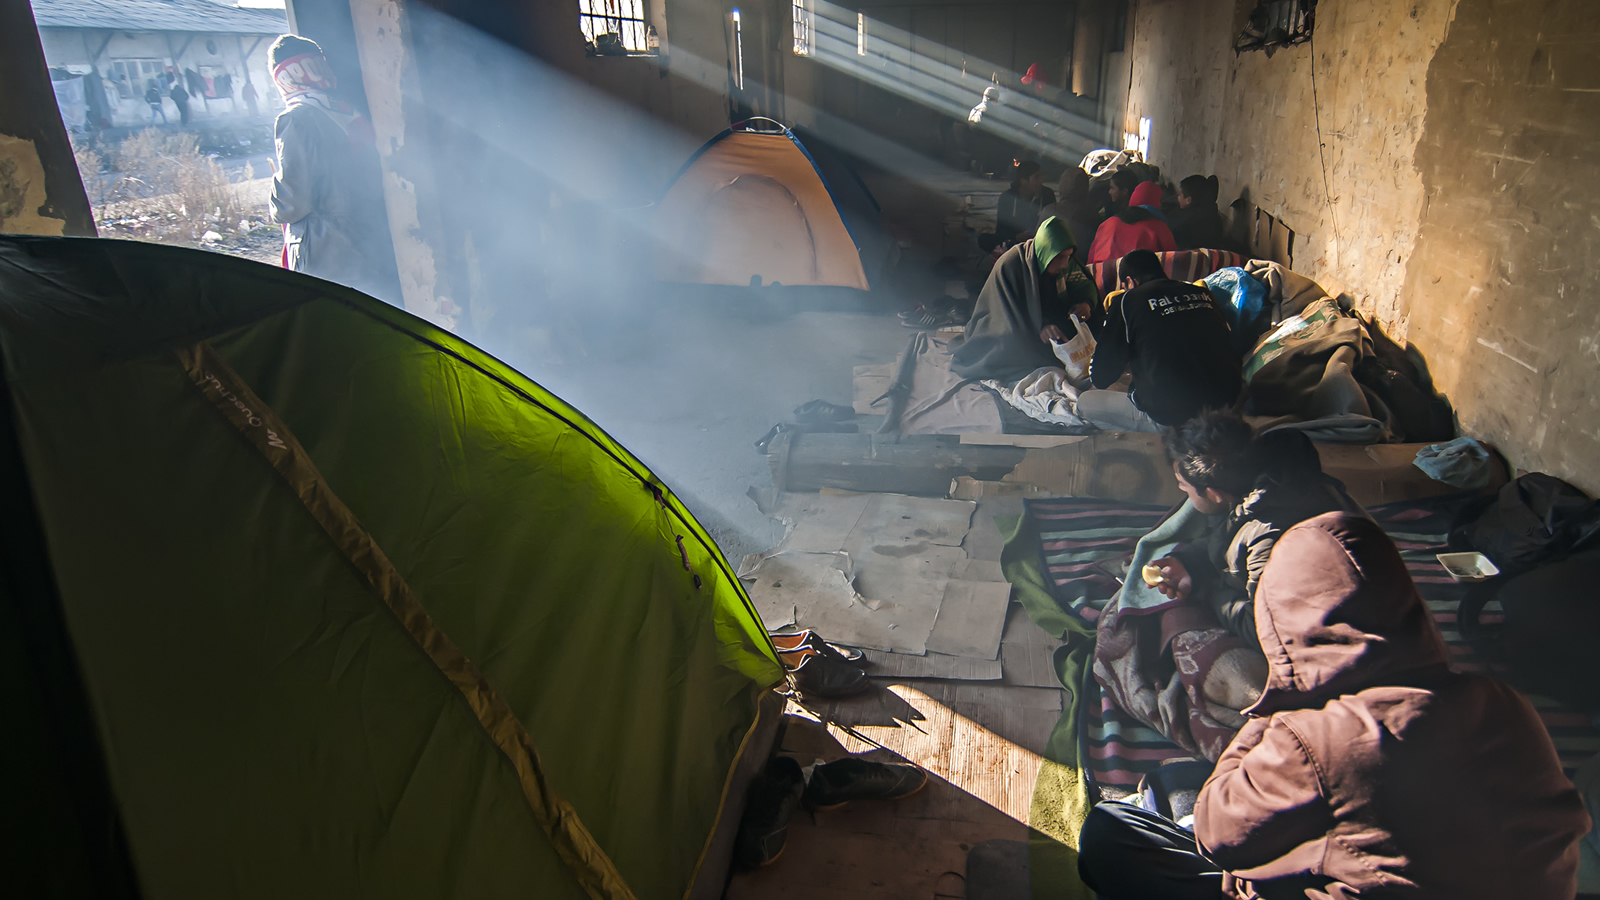 Refugees Eating and Erecting Tents Inside Abandoned Buildings